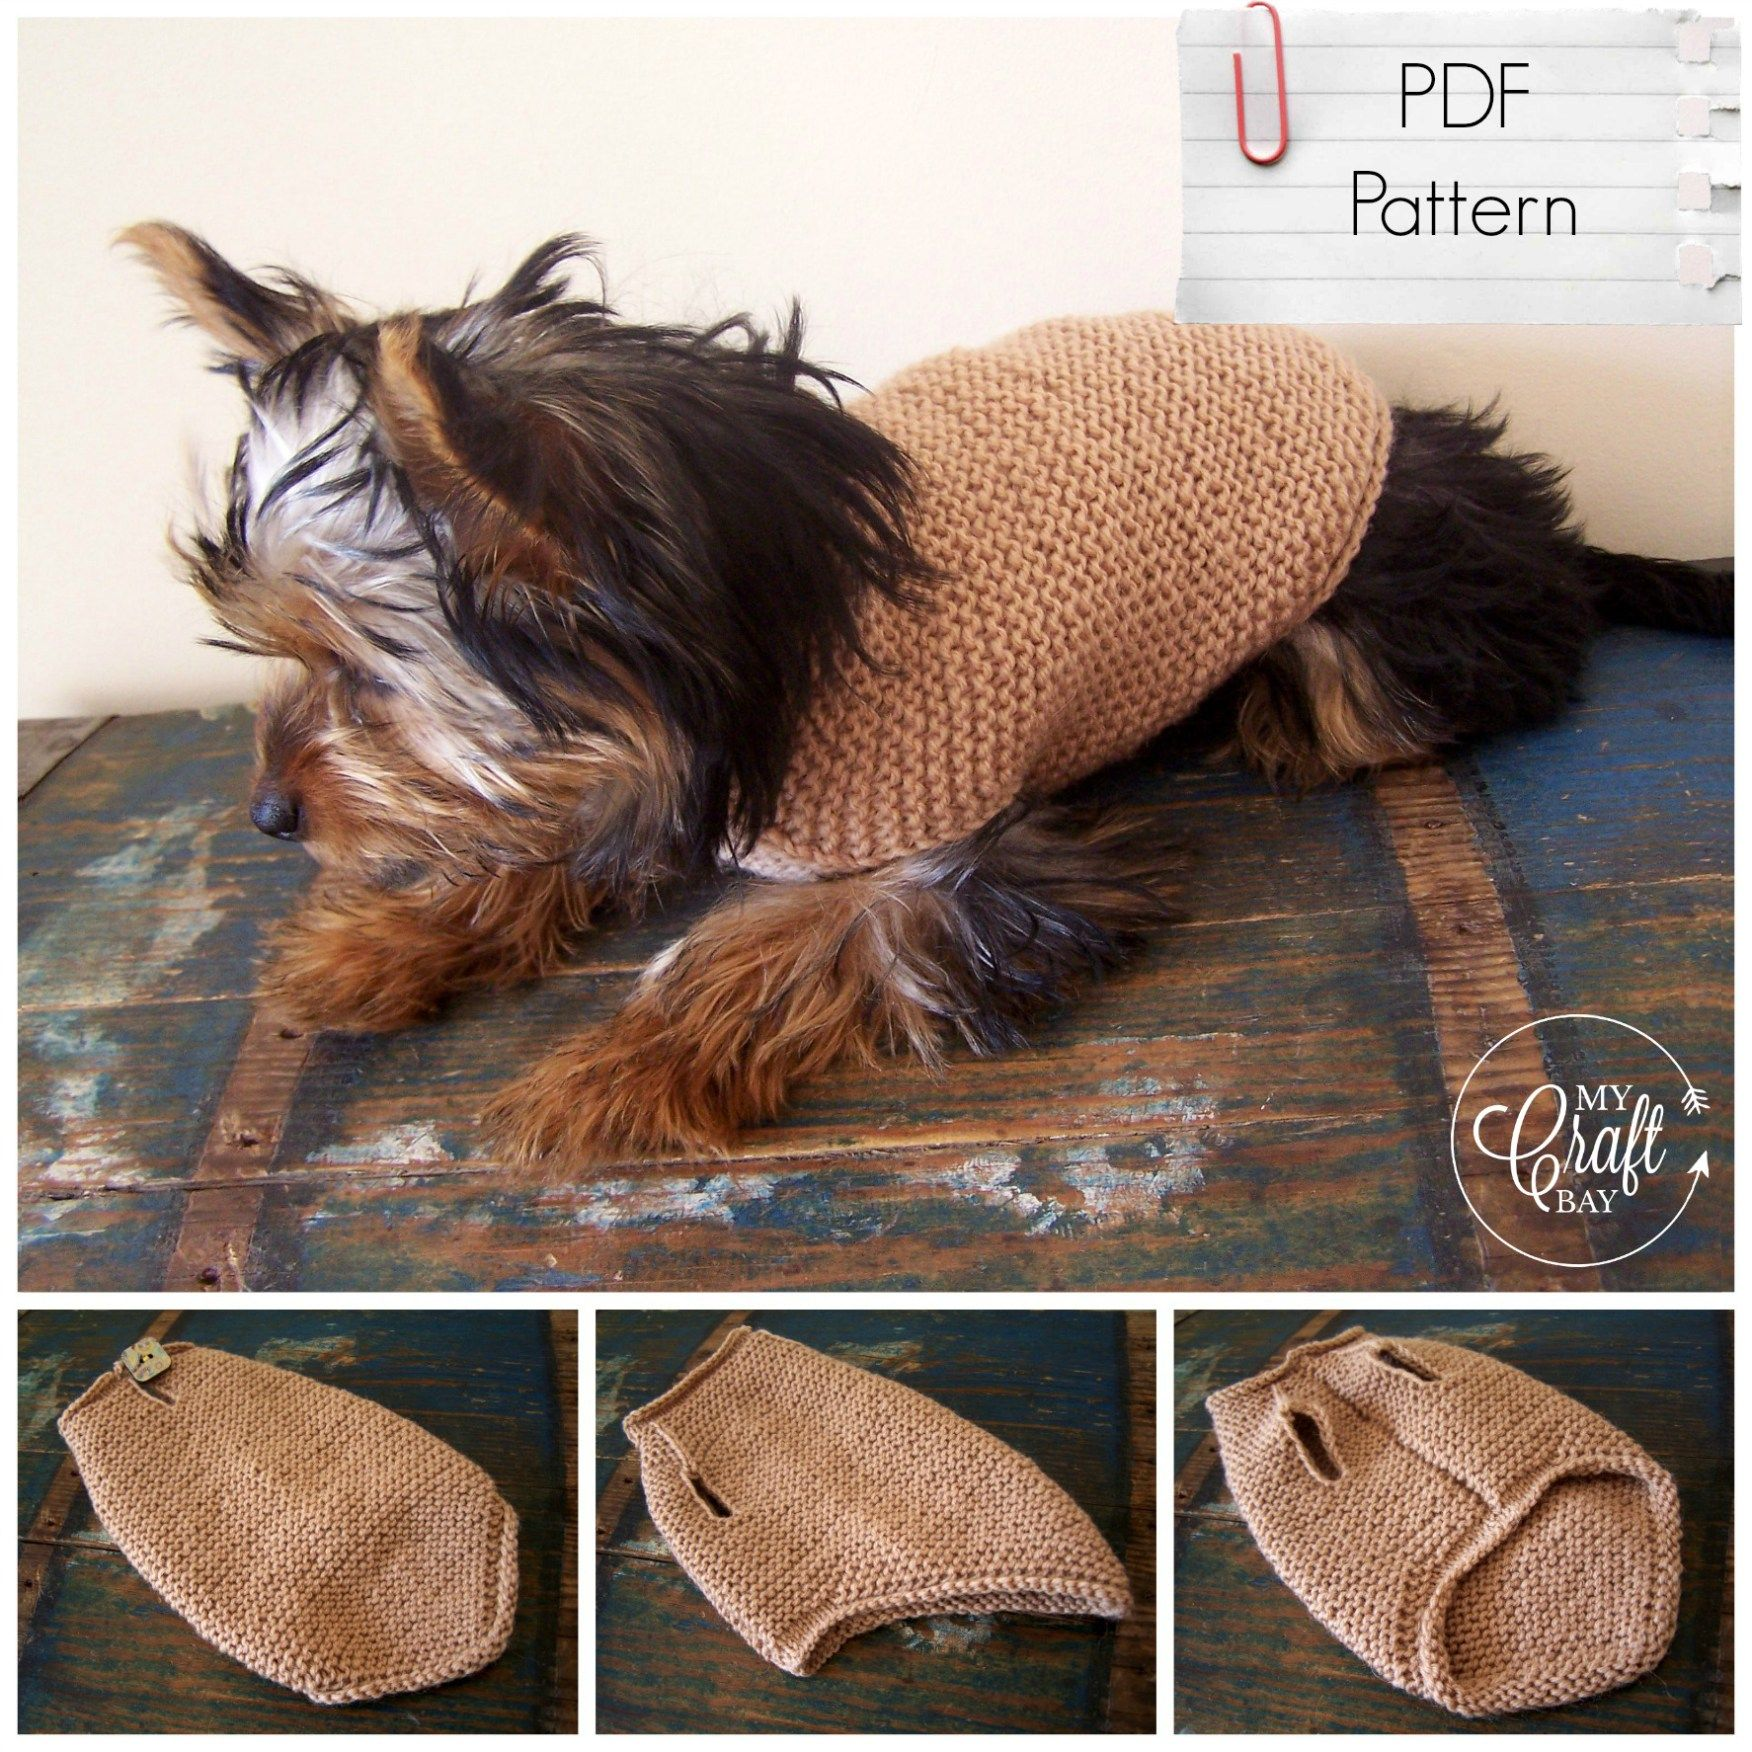 knitted dog sweater PDF pattern | Нюся | Pinterest | Tejido y Ropa